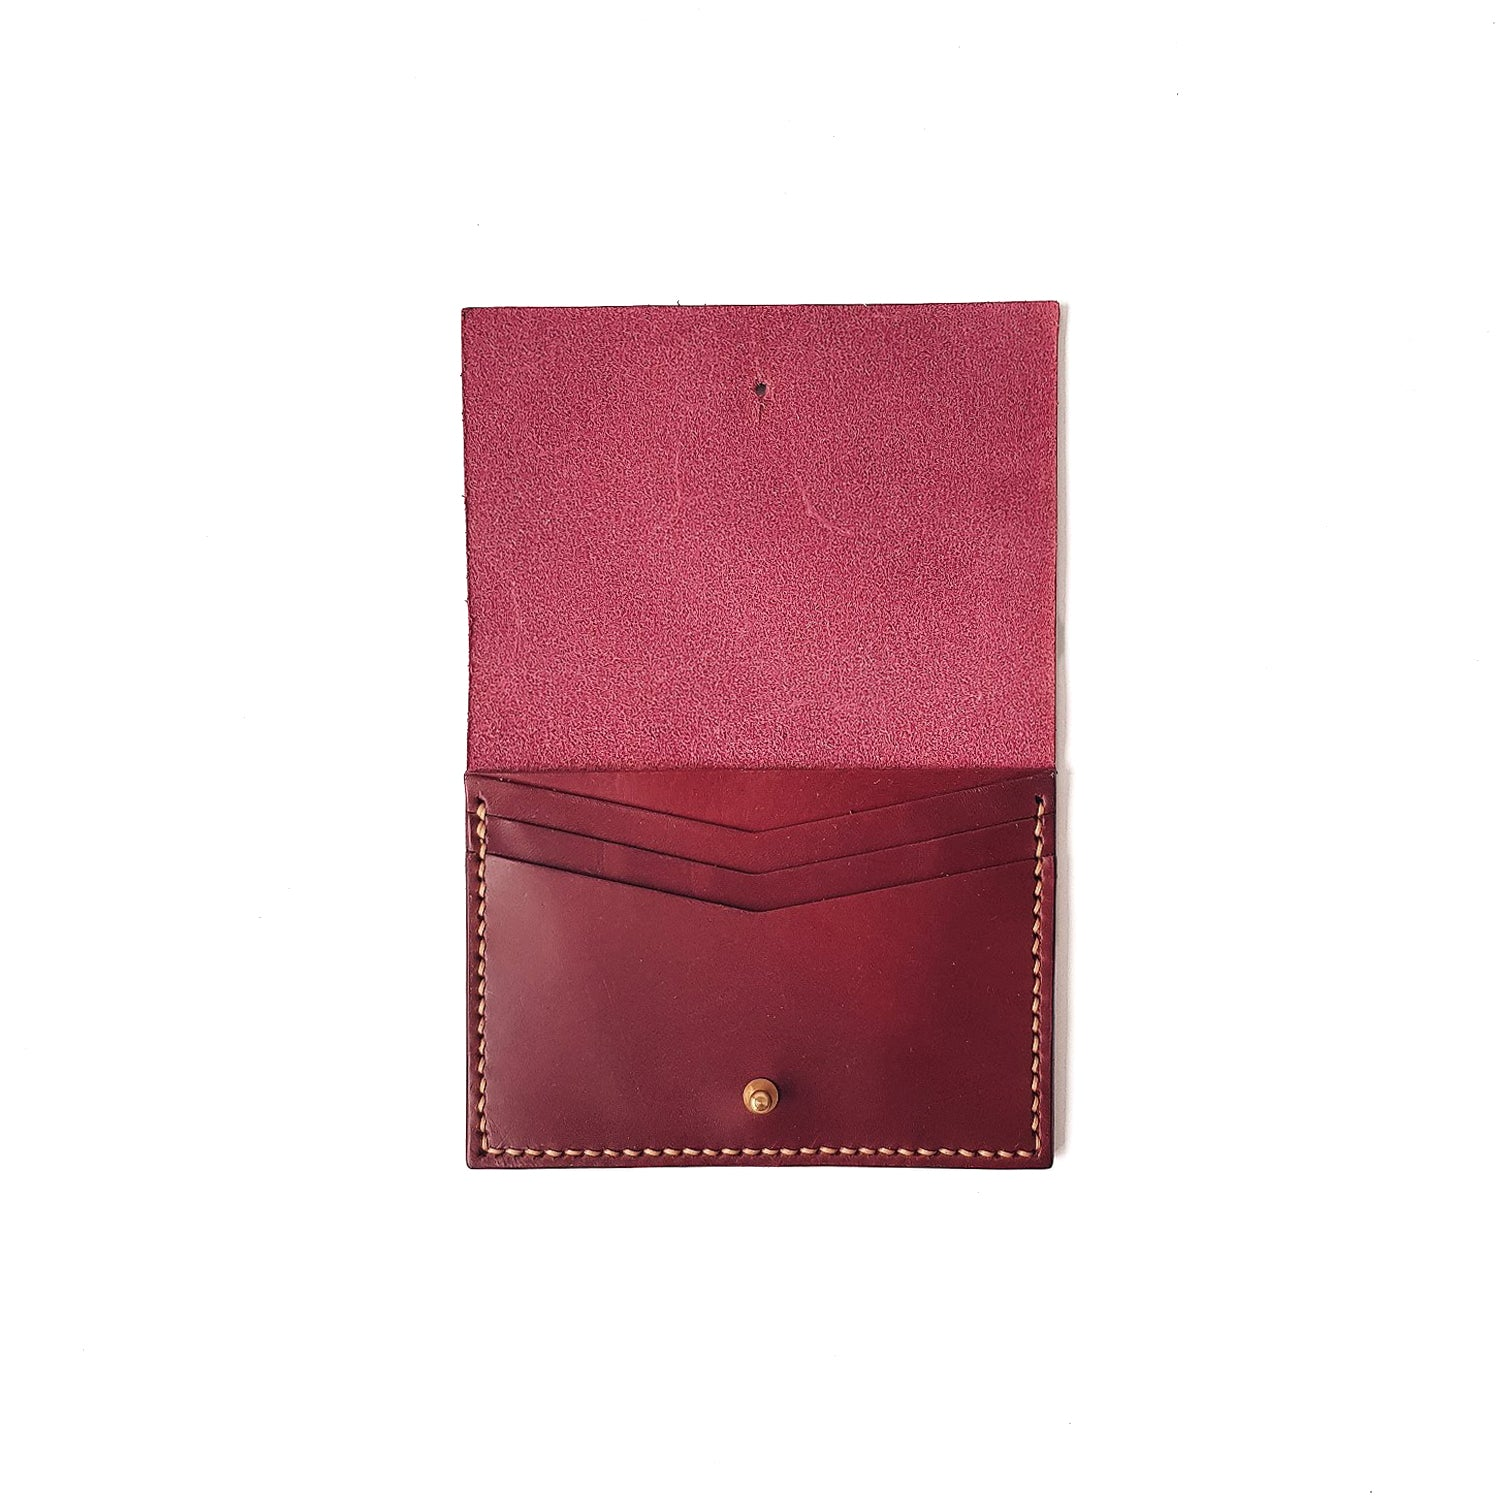 Small Wallet in Wine